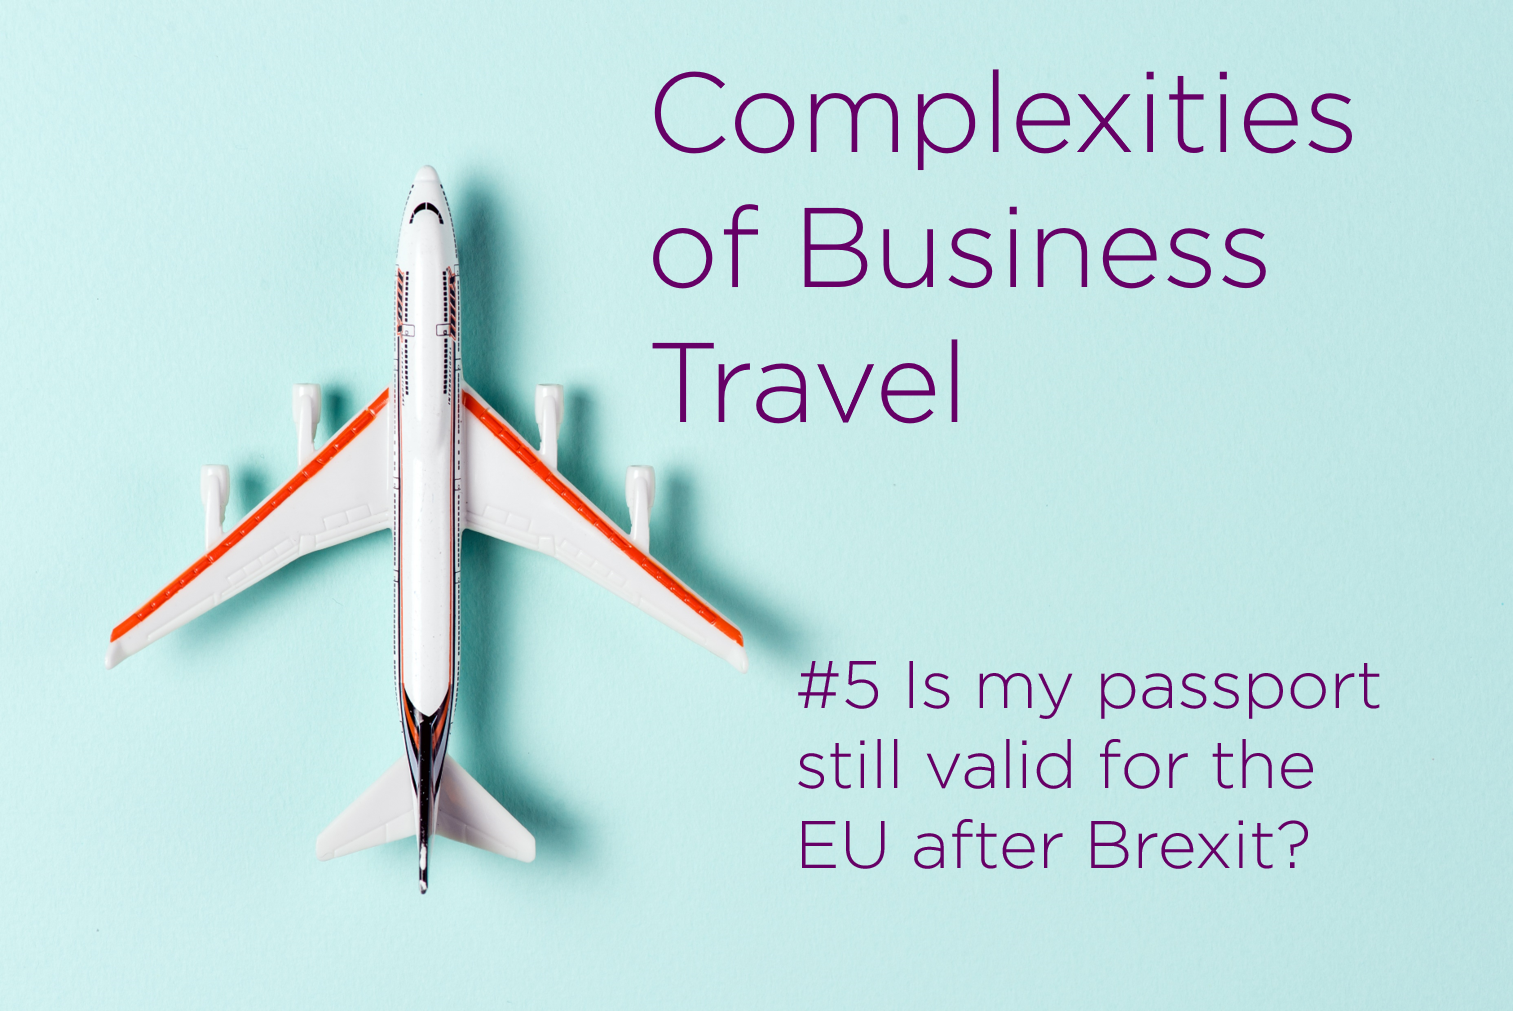 Complexities of Business Travel is my passport valid after brexit